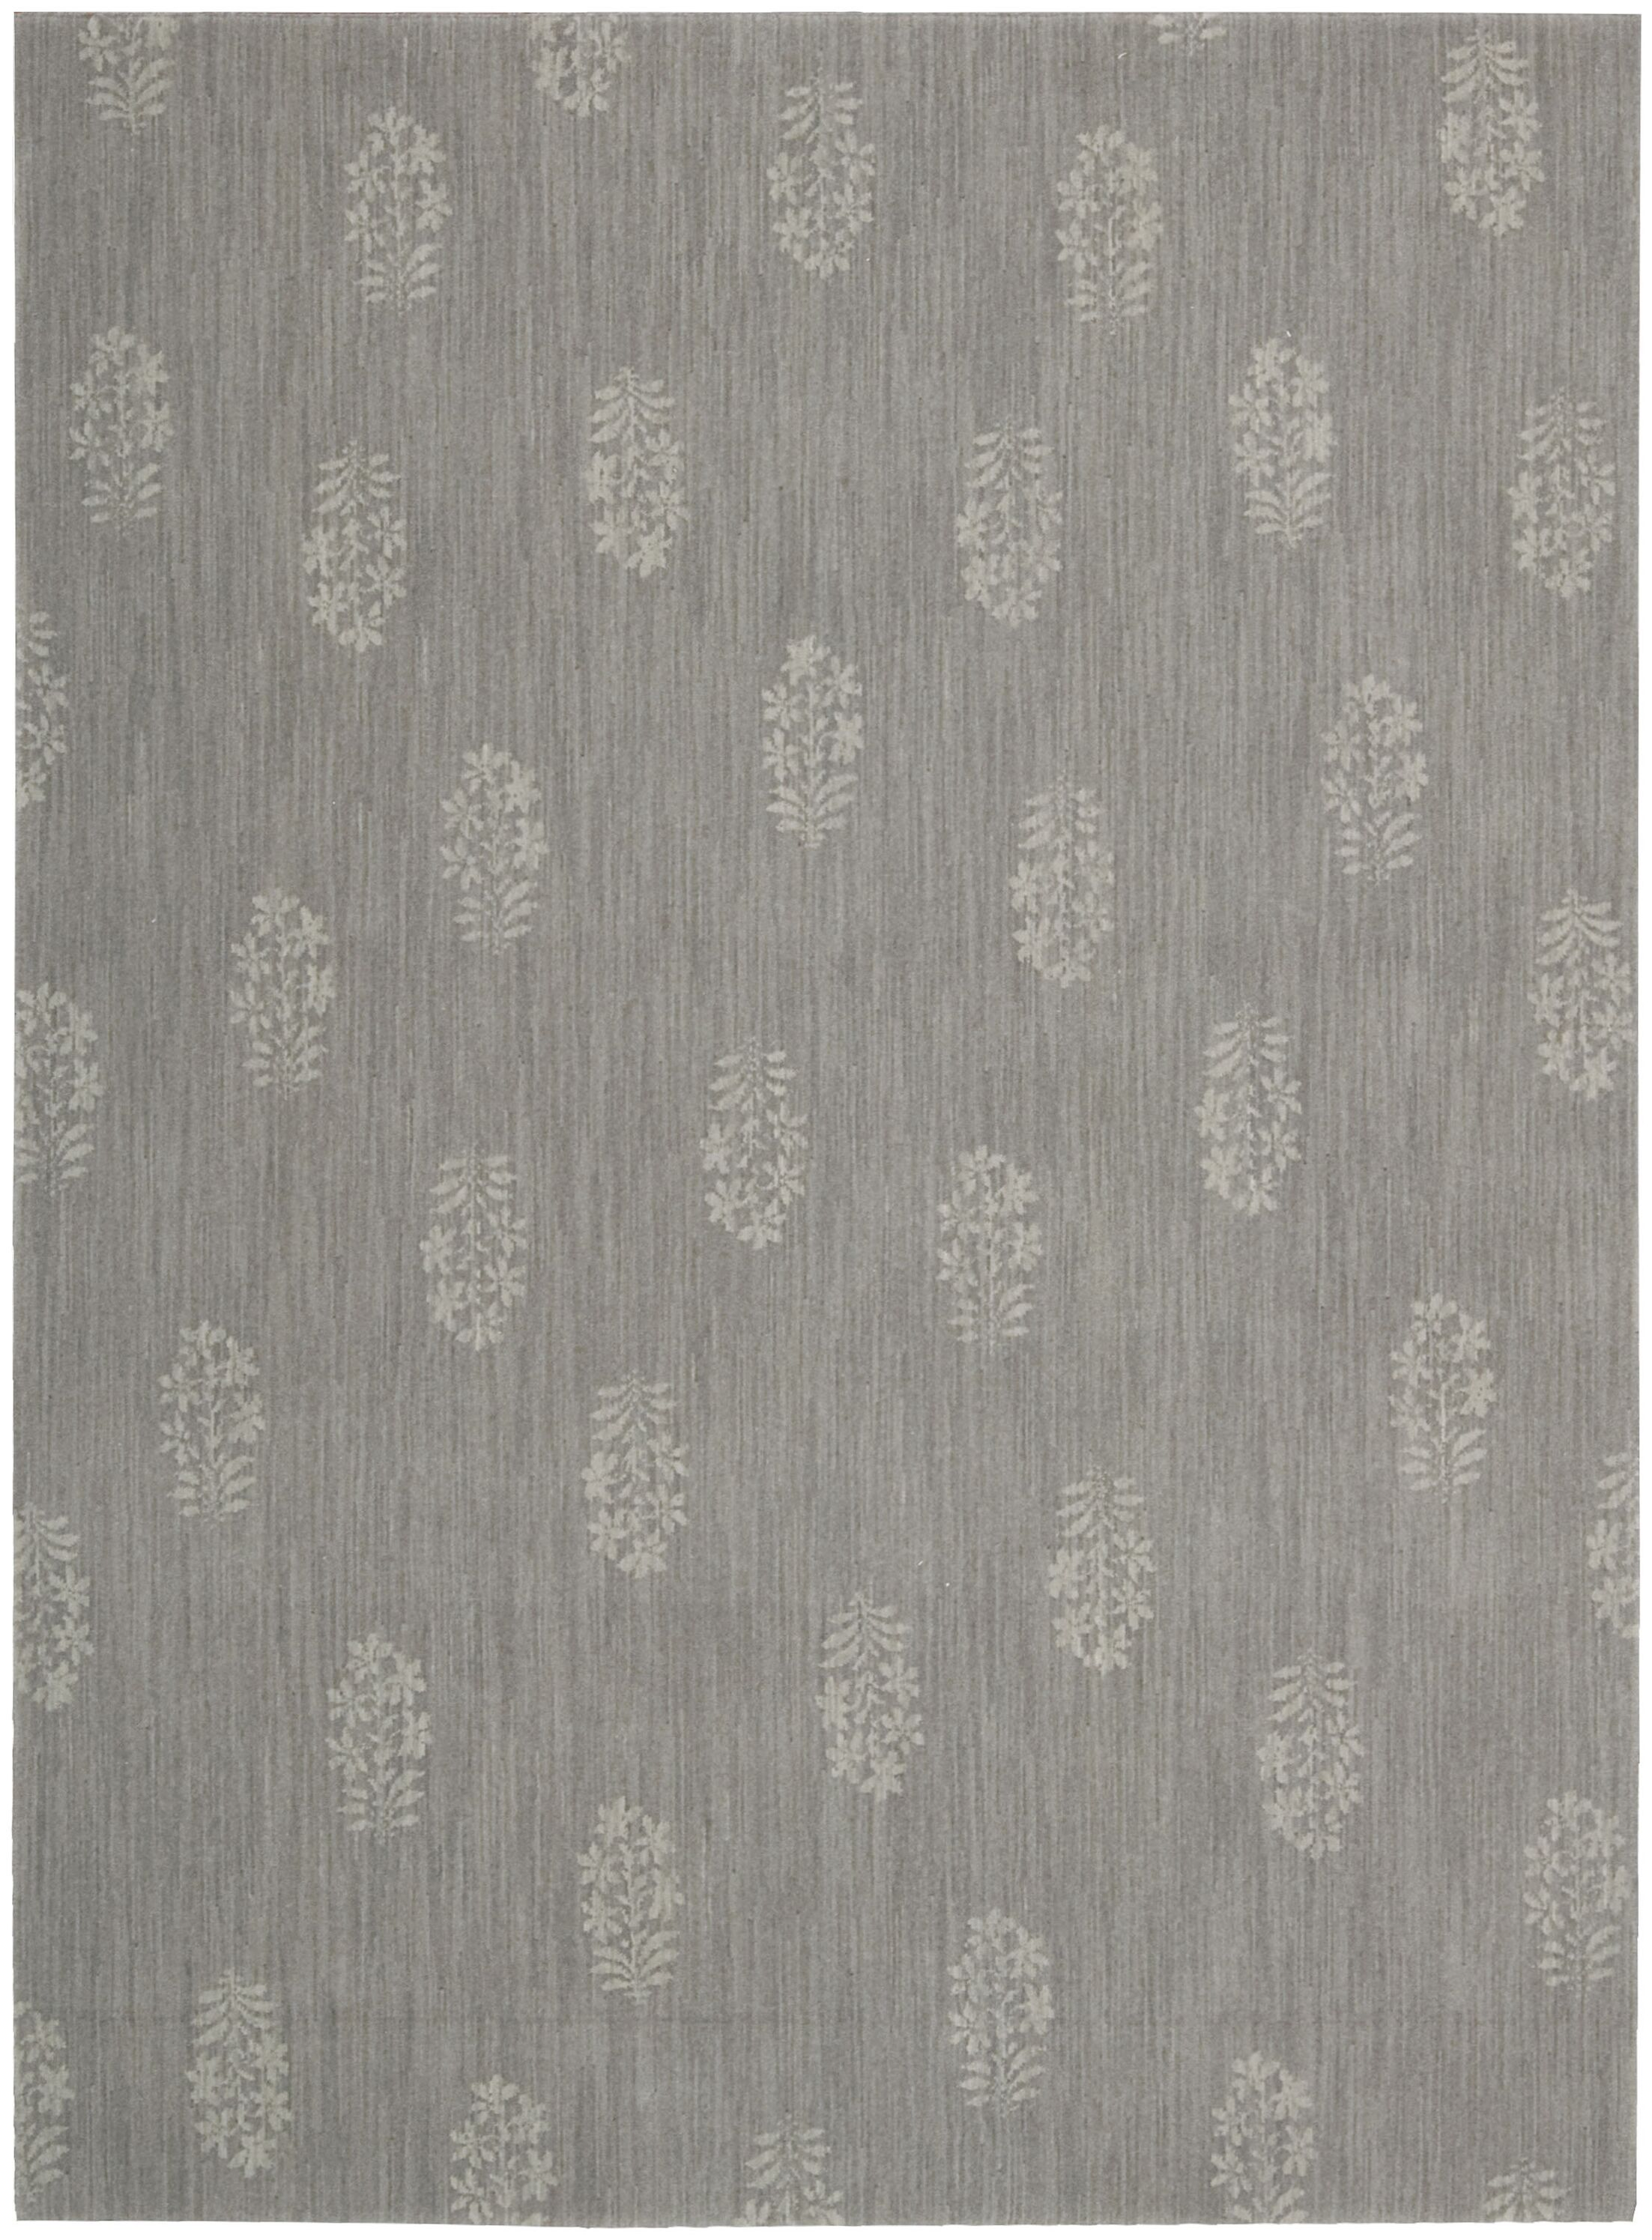 Loom Select Pondicherry Granite Area Rug Rug Size: Rectangle 5'6